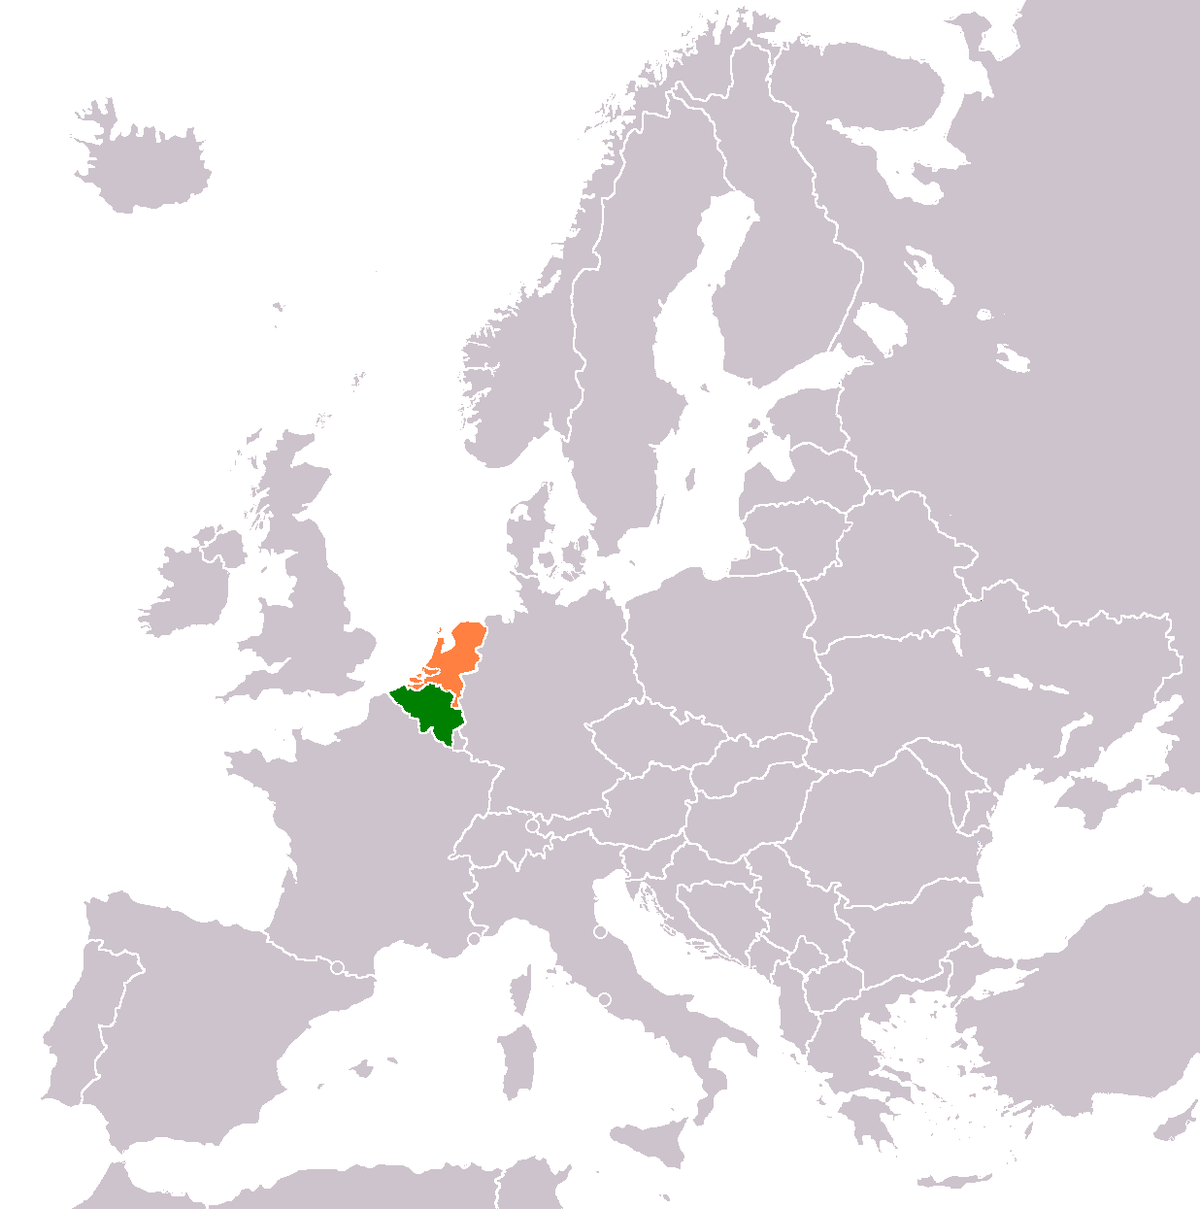 belgiumnetherlands relations wikipedia